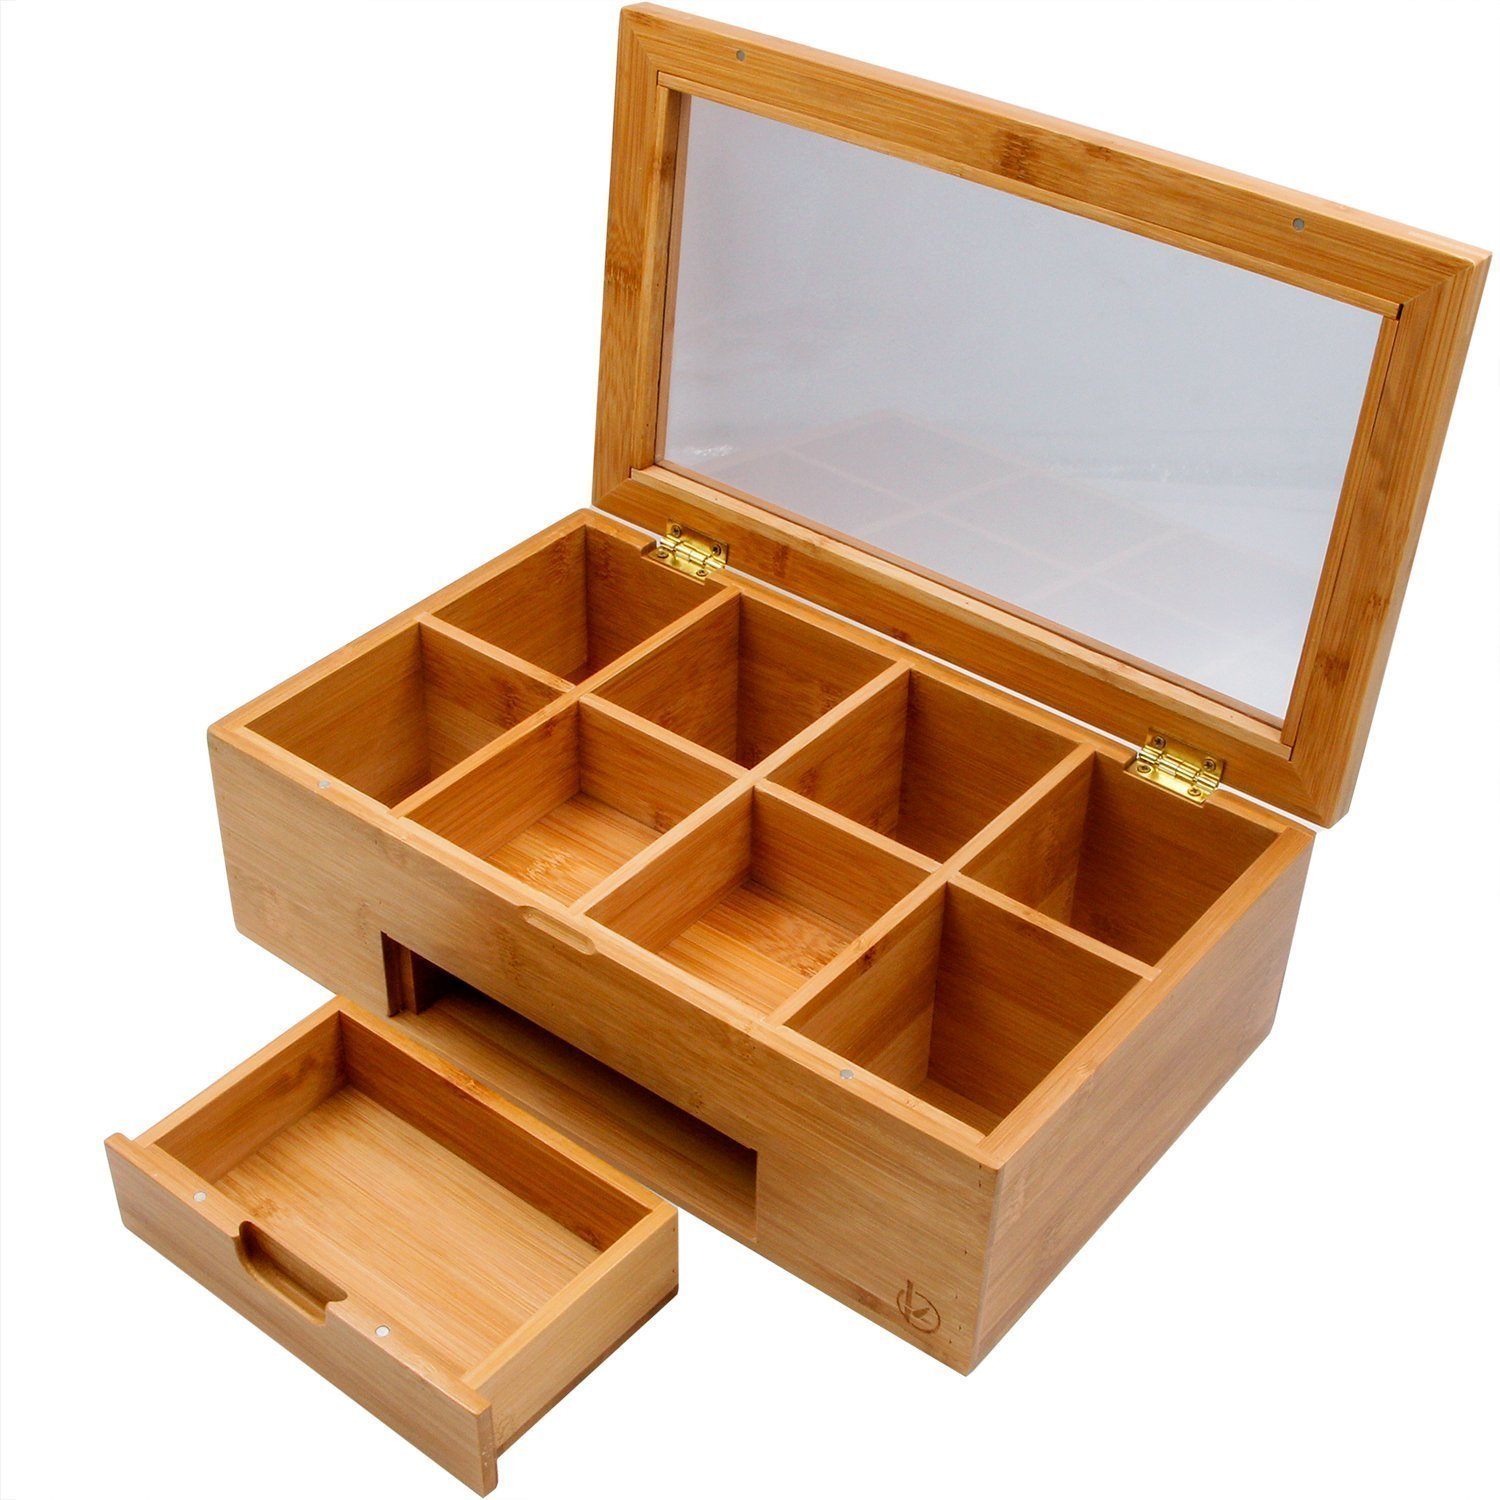 Bamboo Tea Box Natural Chest Storage Organizer with Slide Out Drawer, 8 Compartments - Great Gift Idea